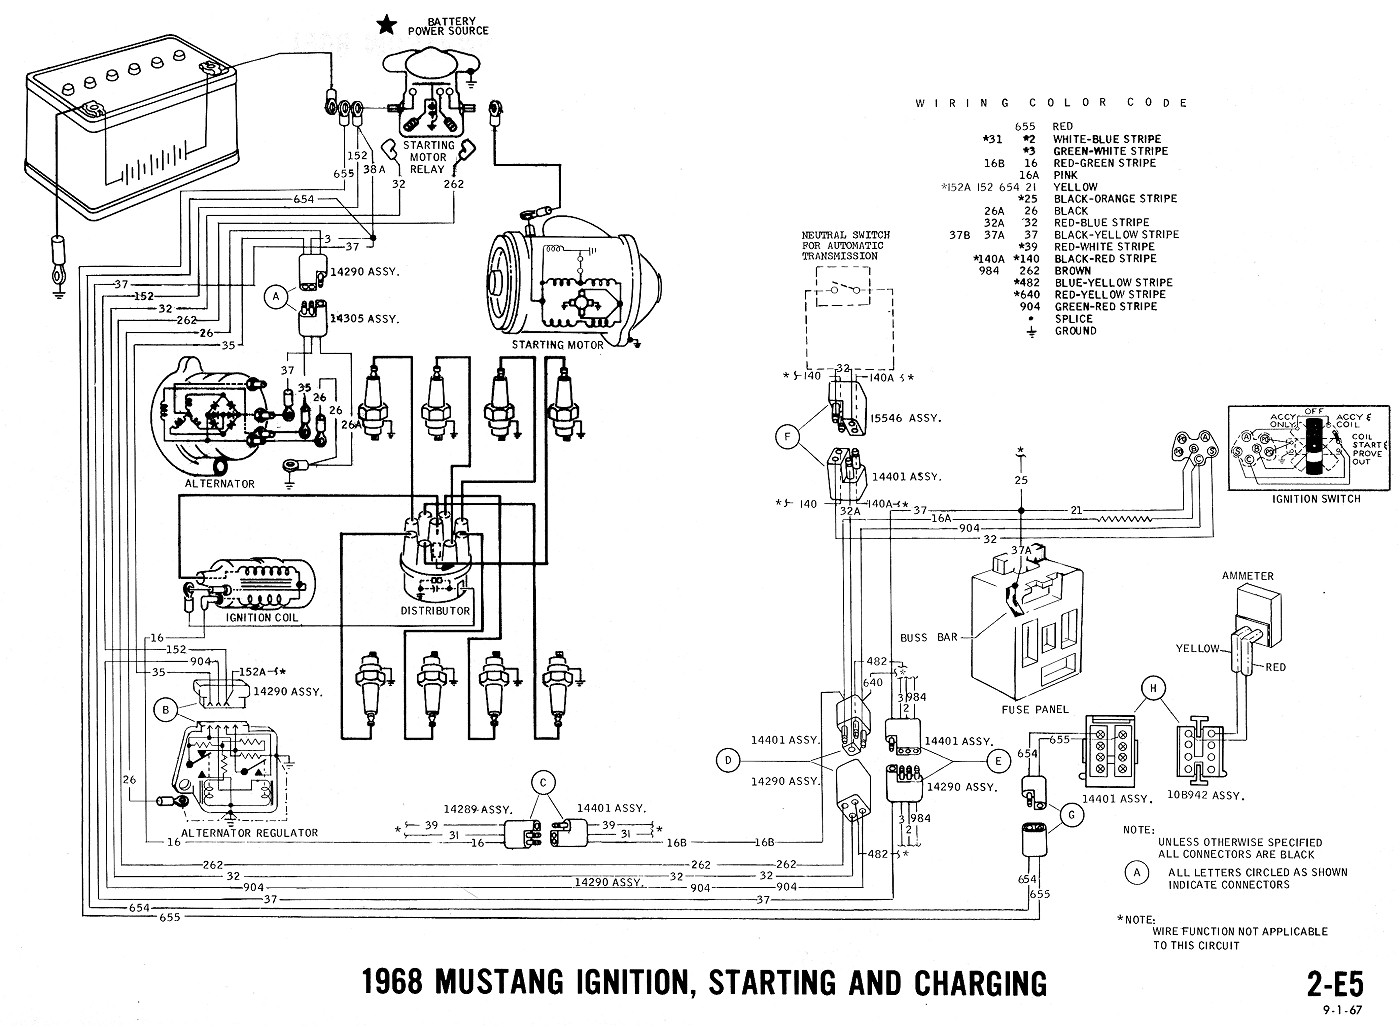 68 Mustang Turn Signal Wiring Diagram Wiring Diagram Report A Report A Maceratadoc It